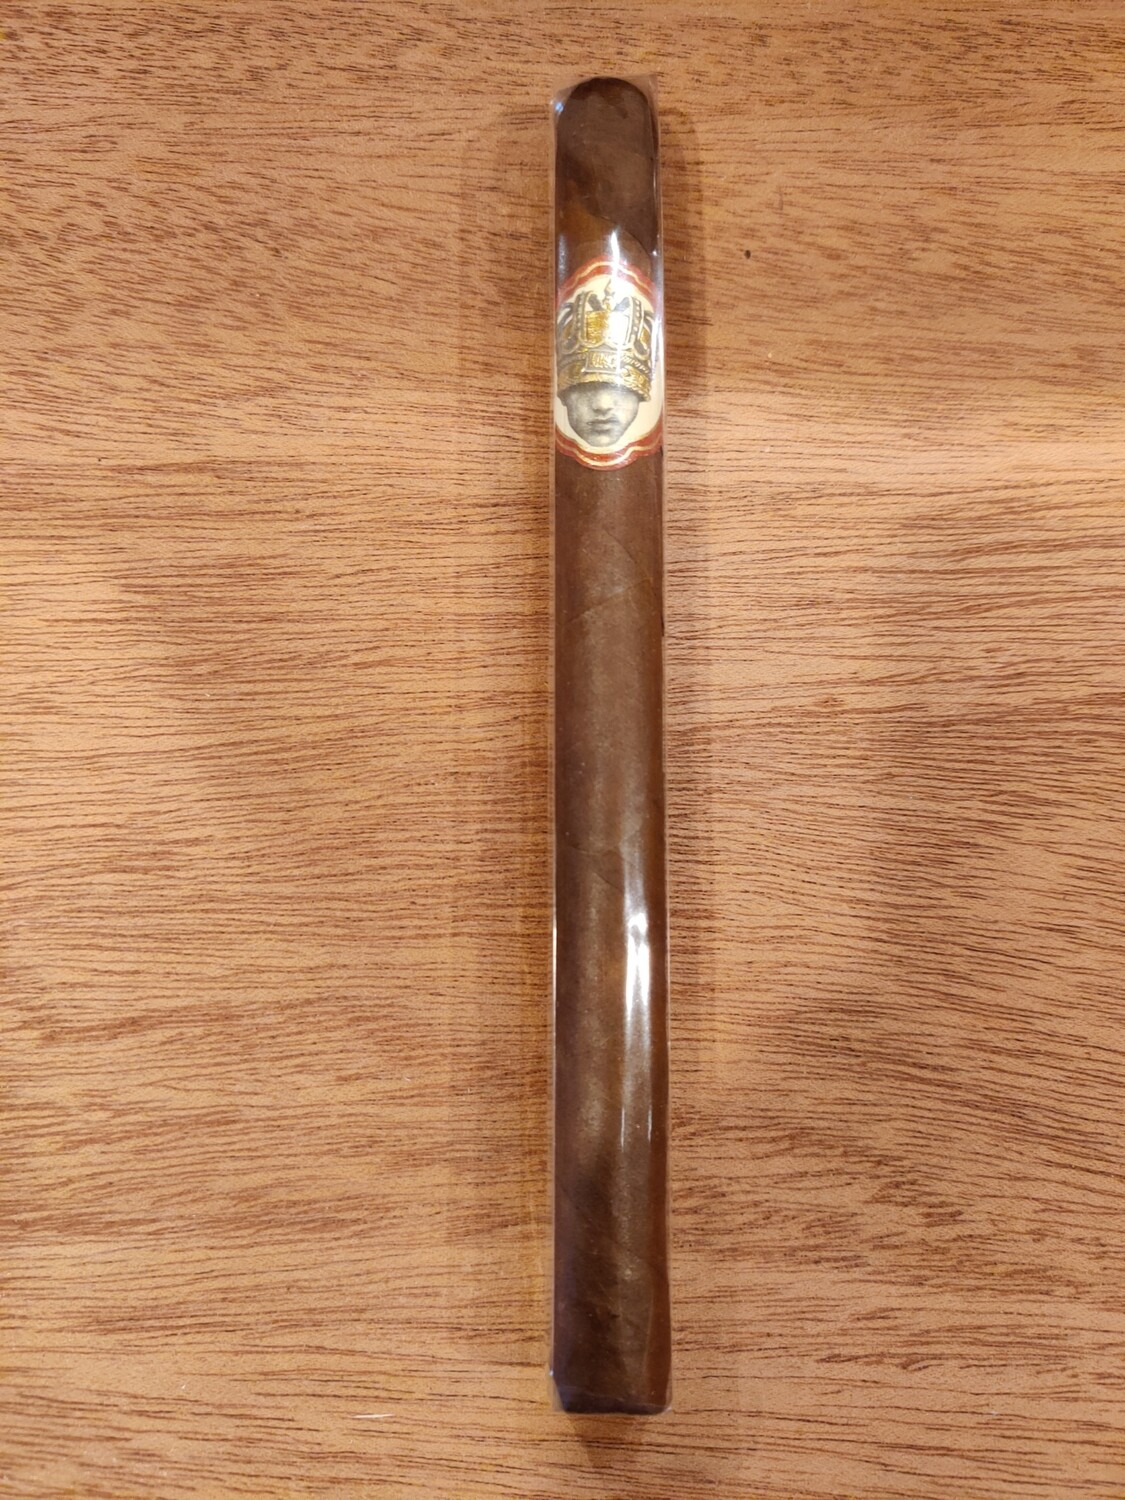 Caldwell Long Live The King My Style Jalapeno Lancero Cigar